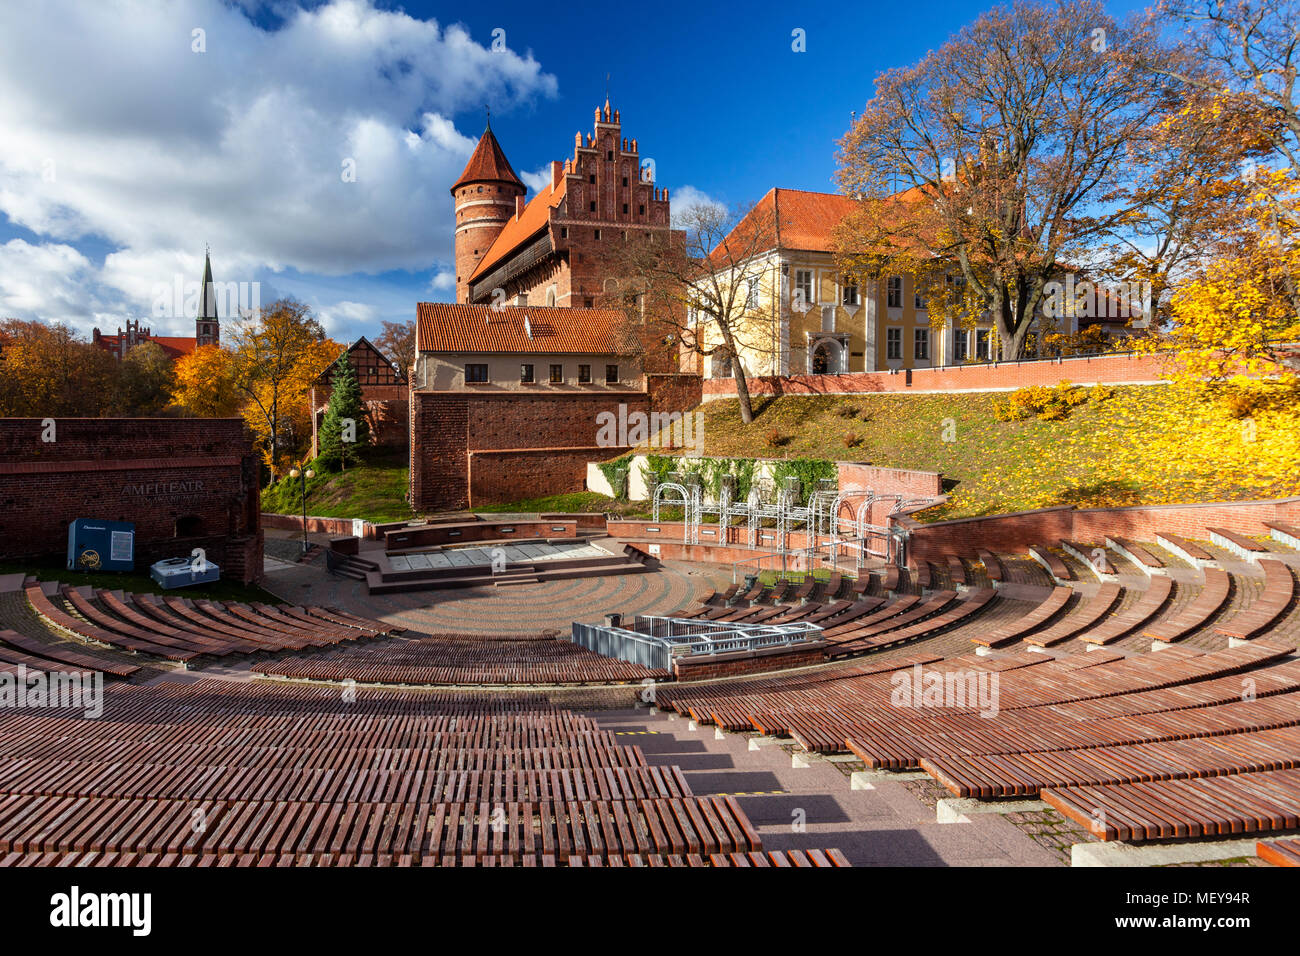 Olsztyn, a Gothic castle from the 14th century, Warmia and Mazury, Poland - Stock Image